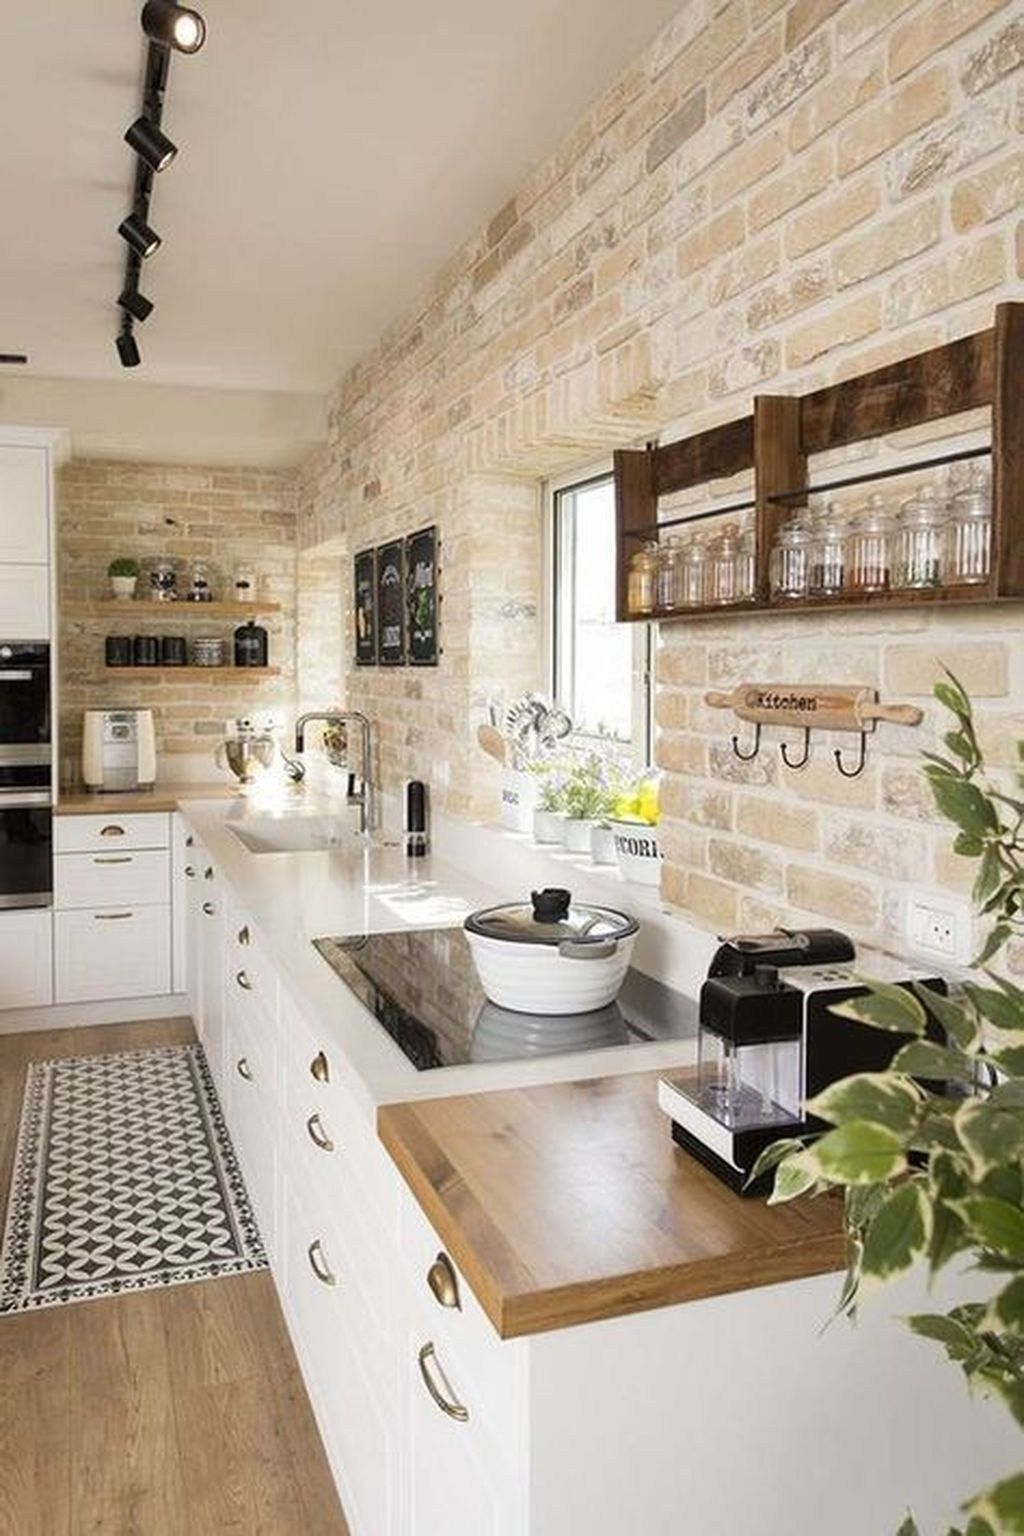 20 Cool Modern Farmhouse Kitchen Backsplash Ideas With Images